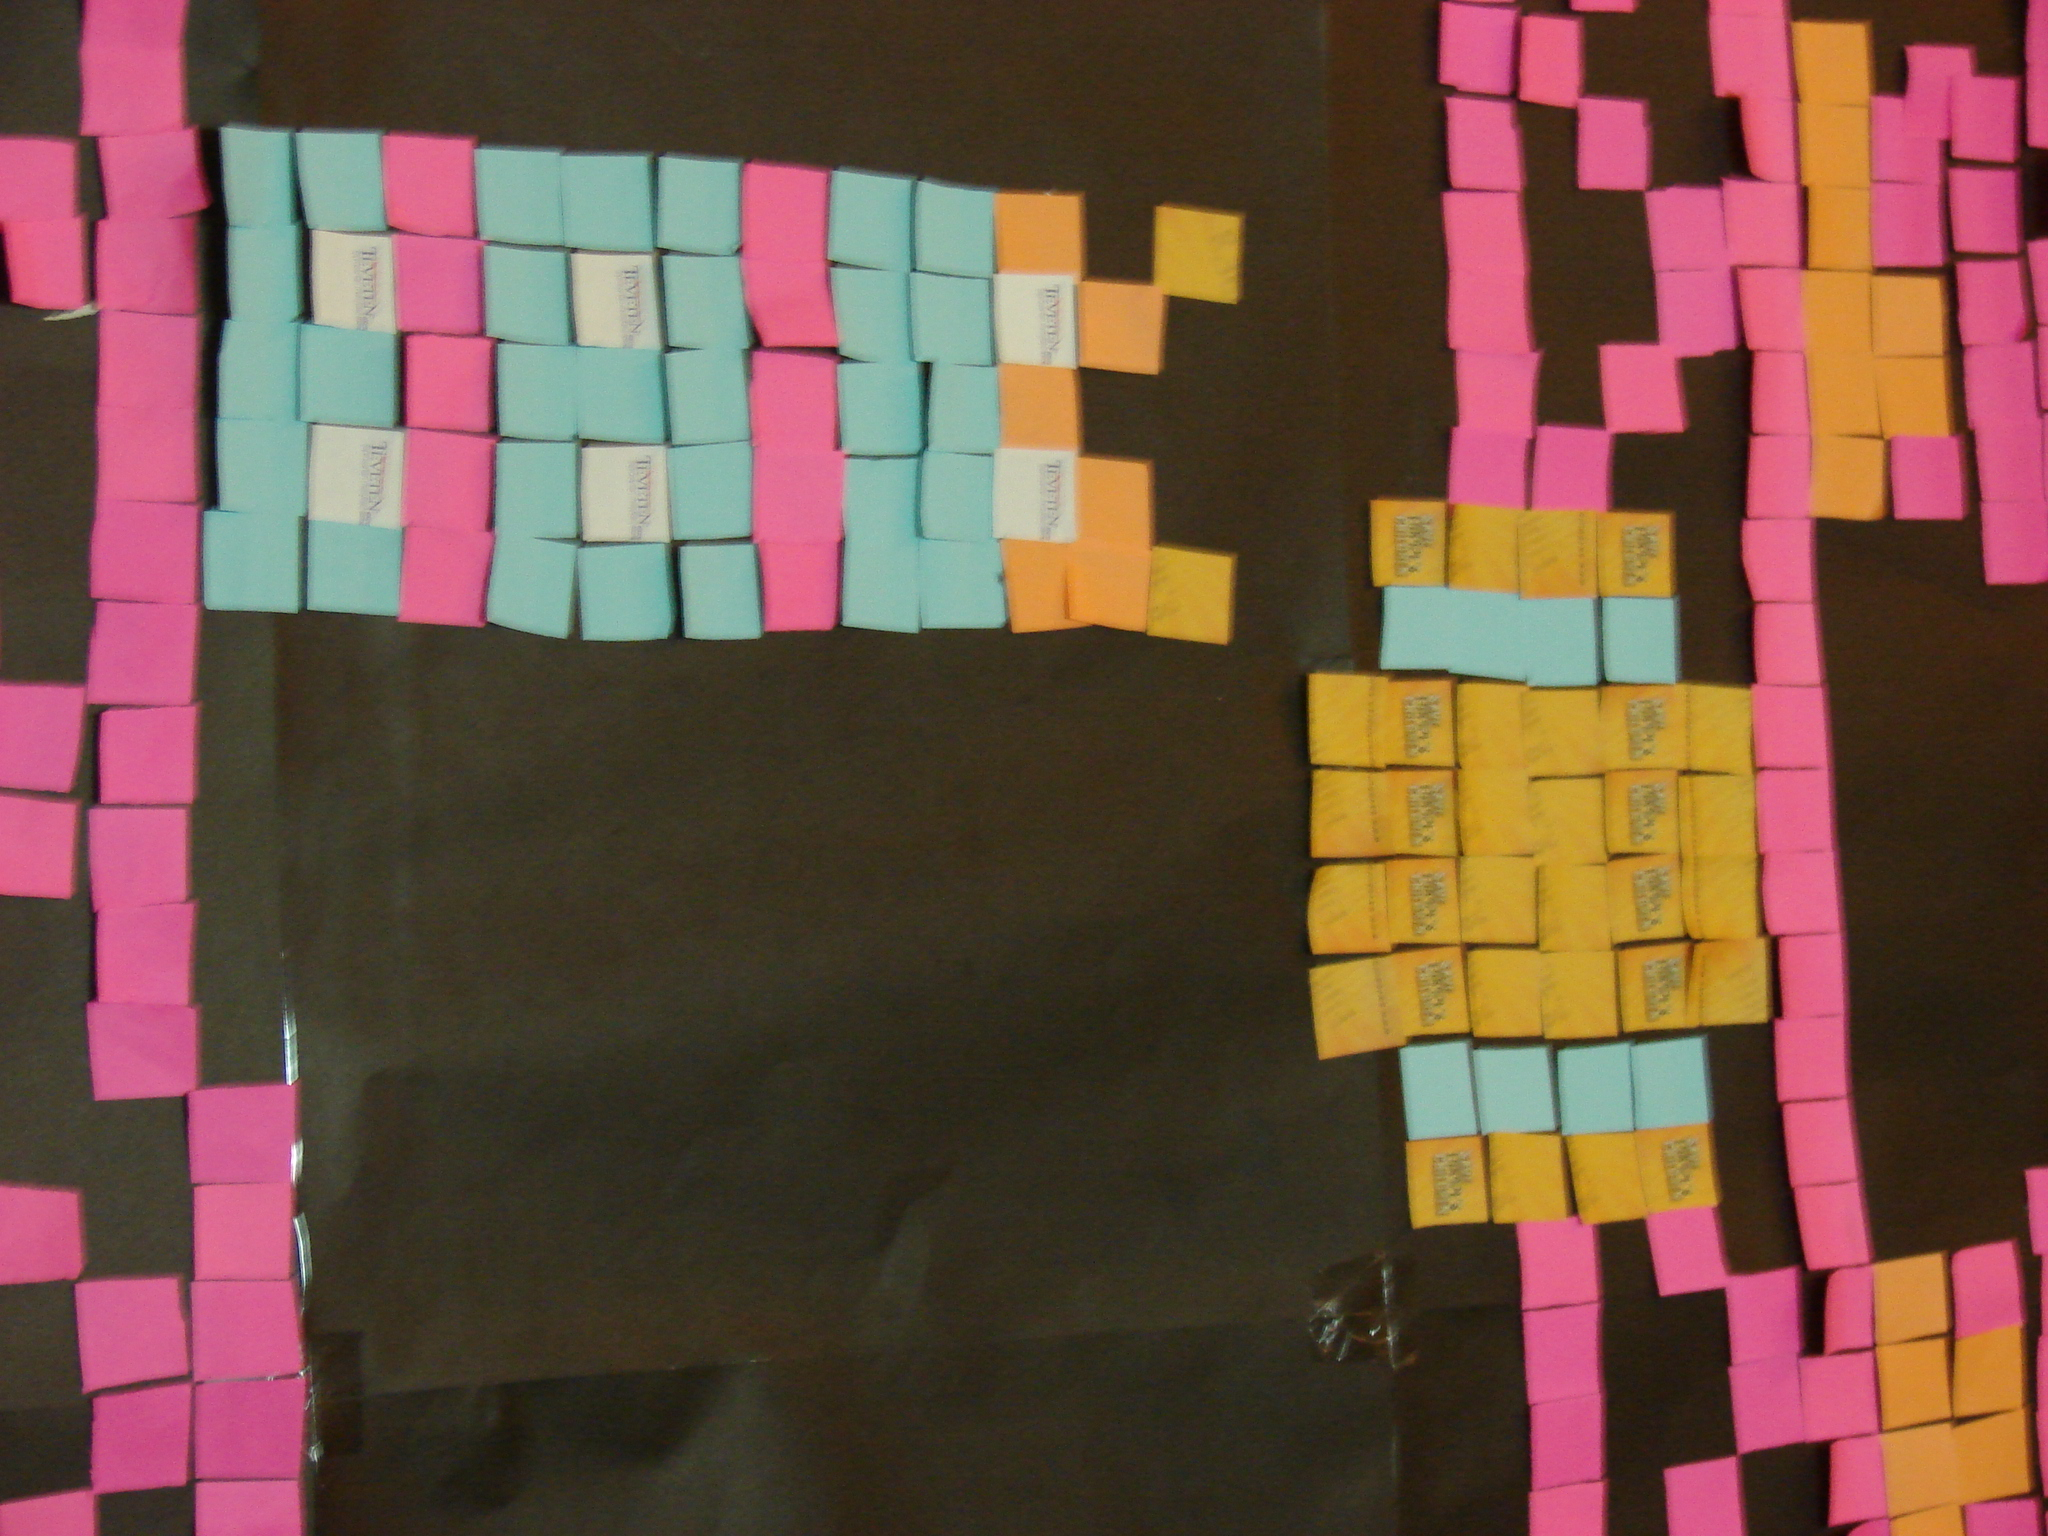 Picture of Donkey Kong Sticky Note Mosaic